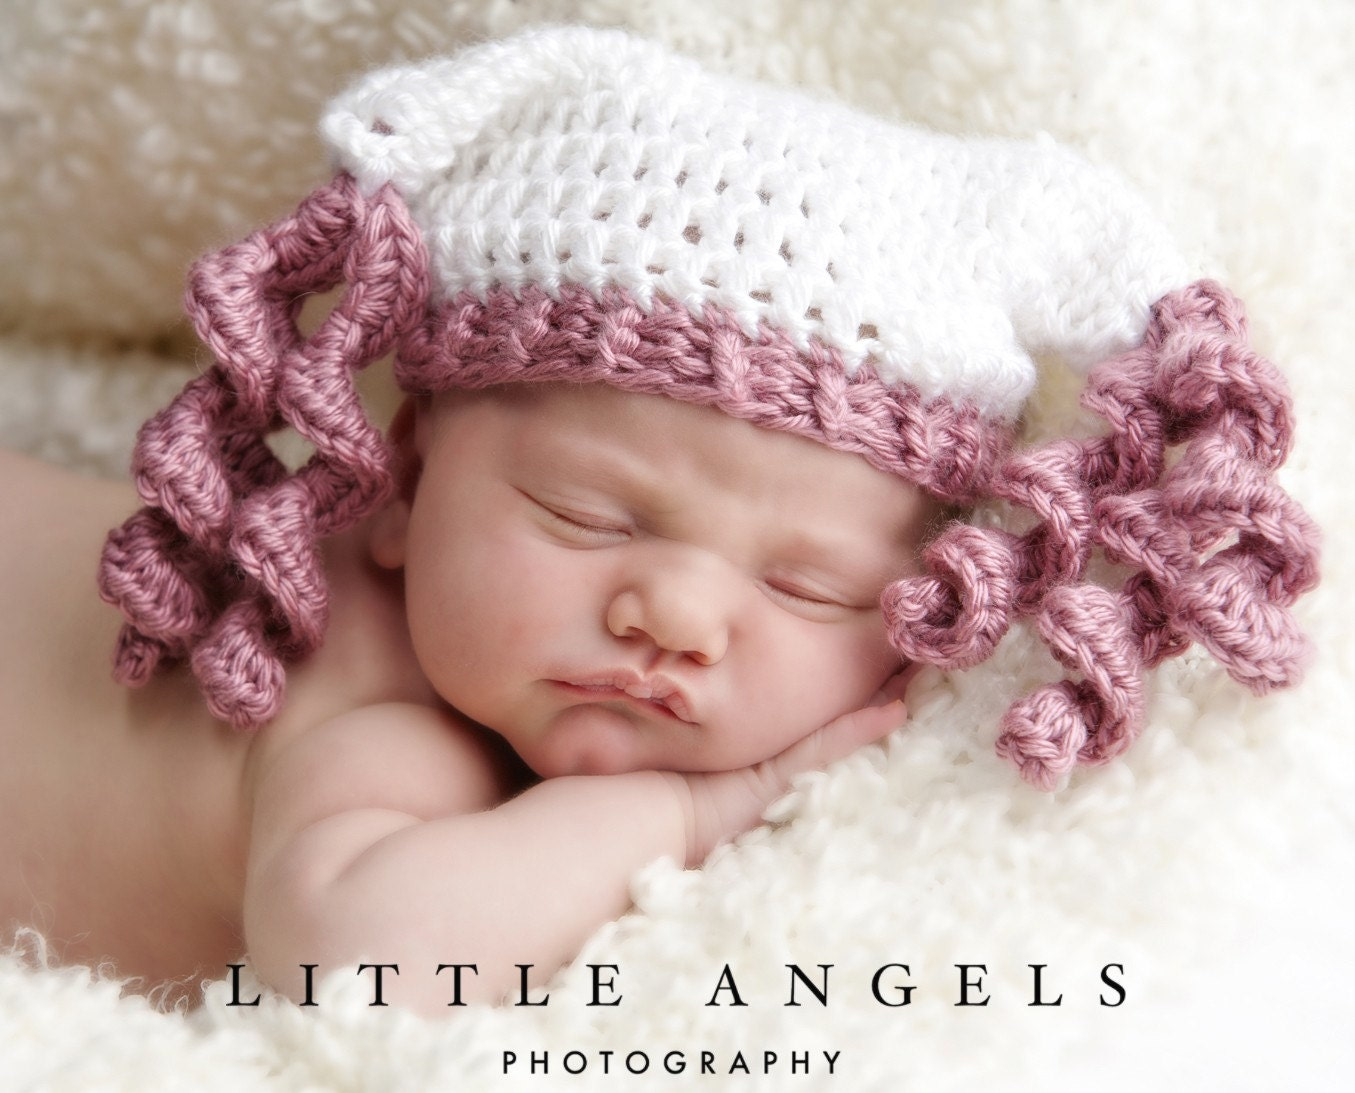 Items similar to Baby Pigtails Crochet Hat Pattern (441 ...